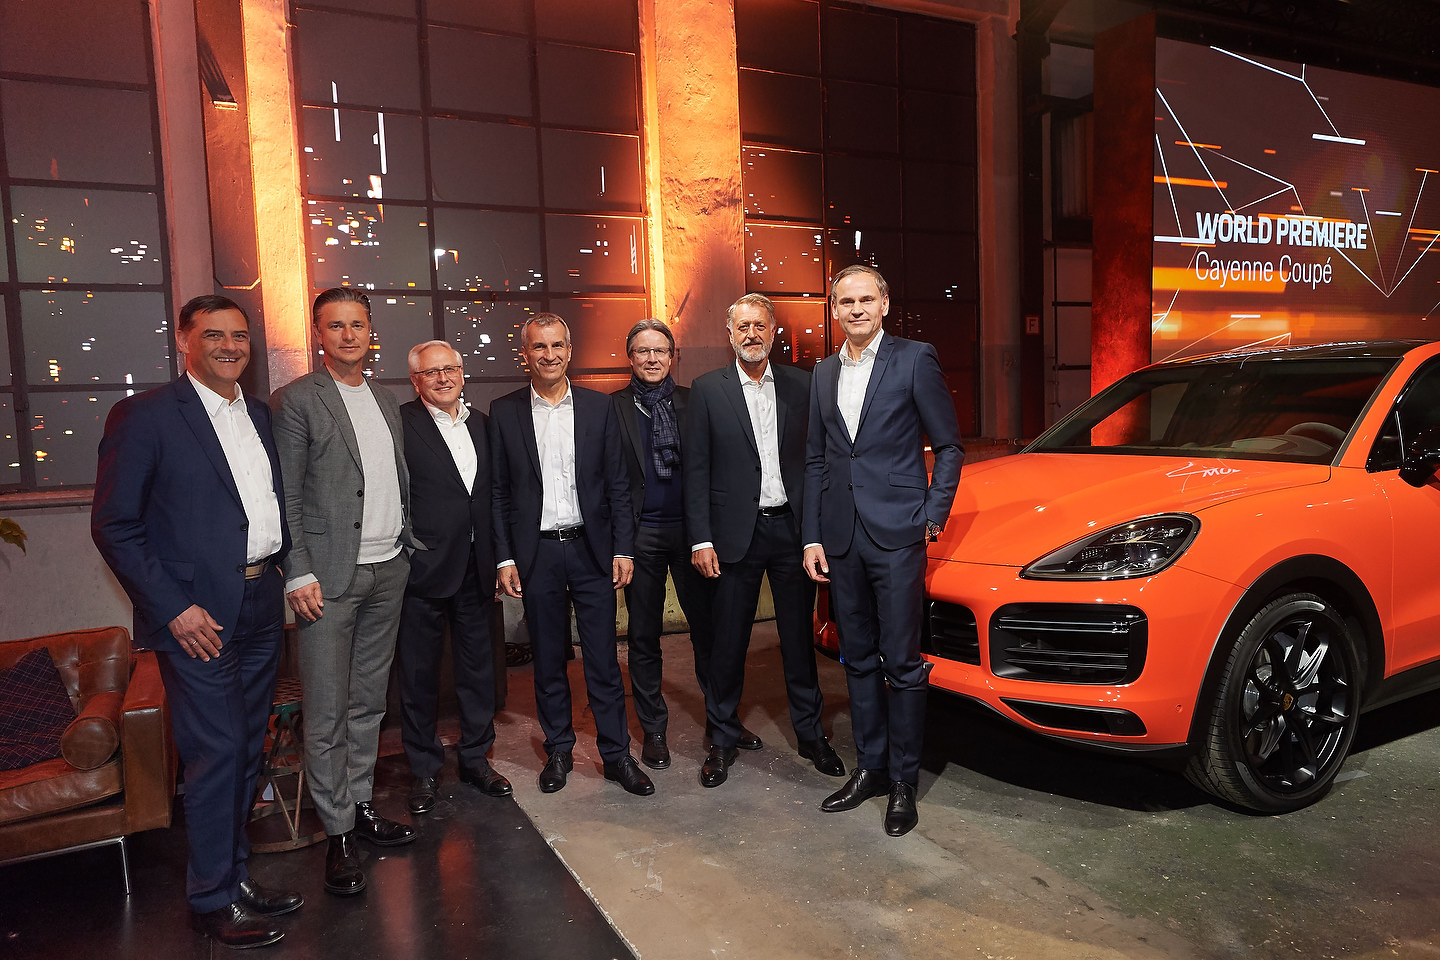 World premiere of the 2020 Porsche Cayenne CoupŽ in Stuttgart: Michael Steiner, Member of the Executive Board, Research and Development; Lutz Meschke, Member of the Executive Board, Finance and IT; Uwe-Karsten StŠdter, Member of the Executive Board, Procurement; Albrecht Reimold, Member of the Executive Board, Production and Logistics; Andreas Haffner, Member of the Executive Board, Human Resources and Social Affairs; Detlev von Platen, Member of the Executive Board, Sales and Marketing; Oliver Blume, Chairman of the Executive Board of Porsche AG (l-r)